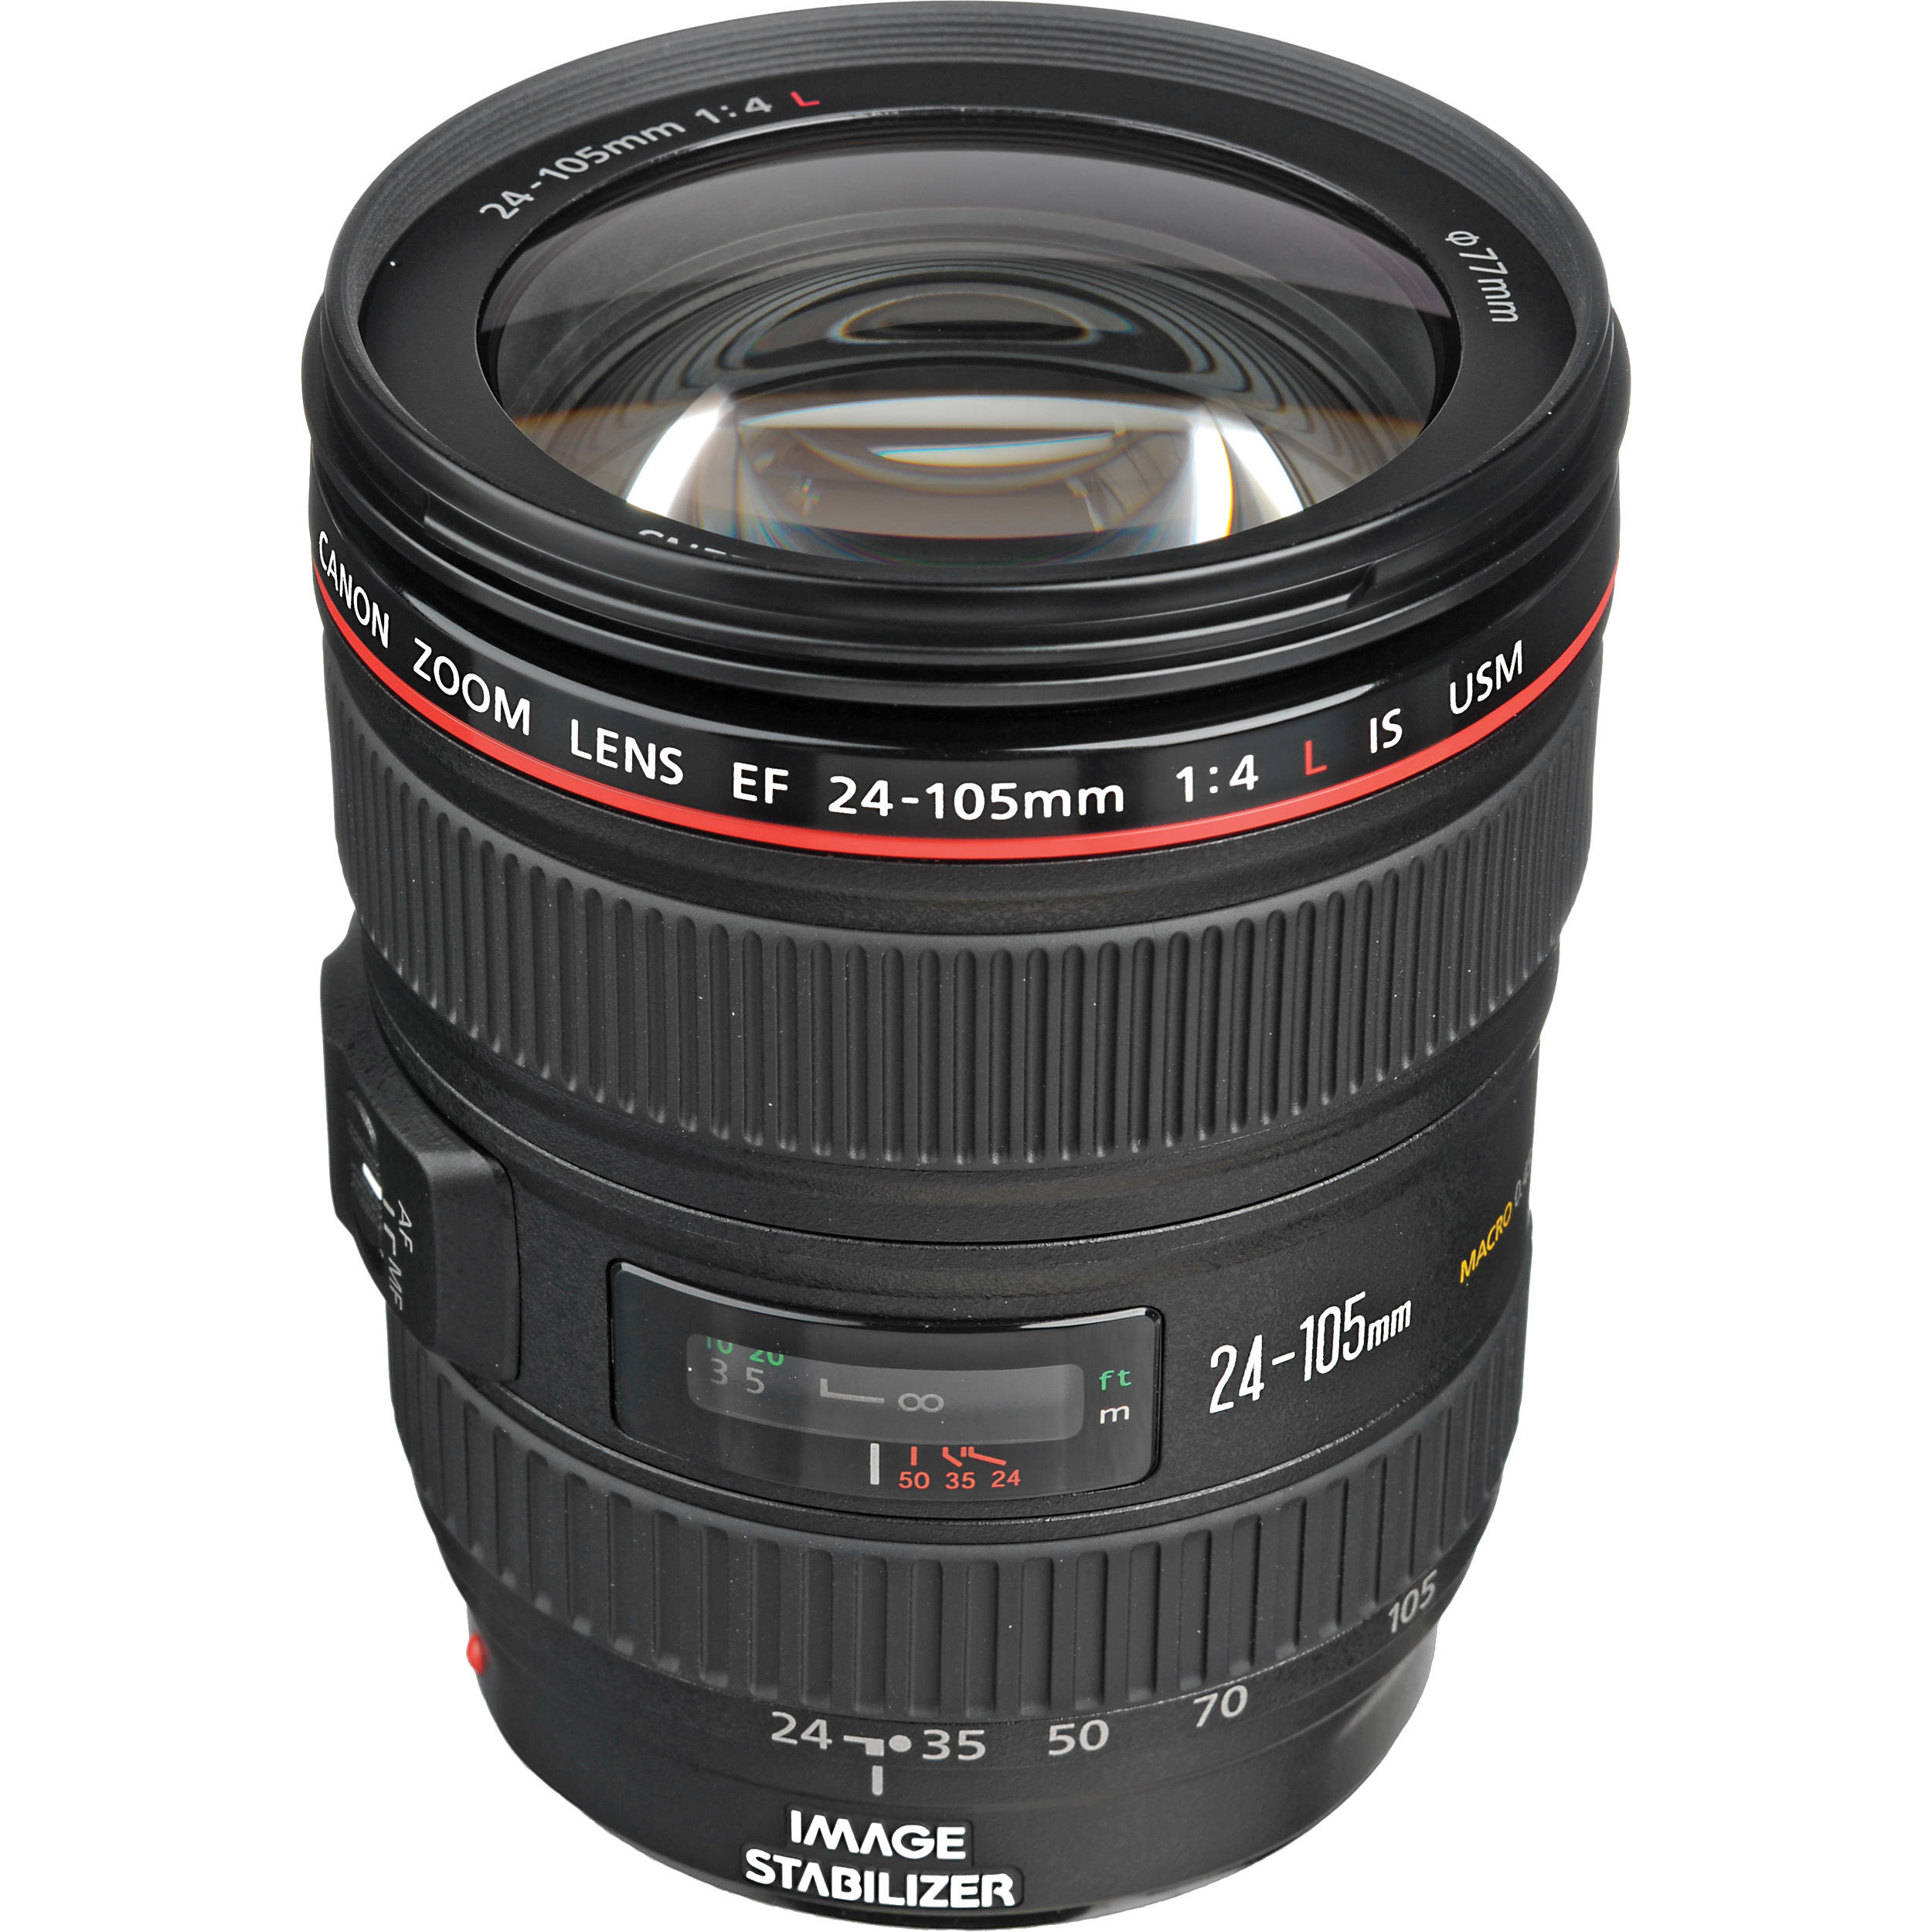 Canon Zoom Lens EF 24-105mm - F/4 L IS USM